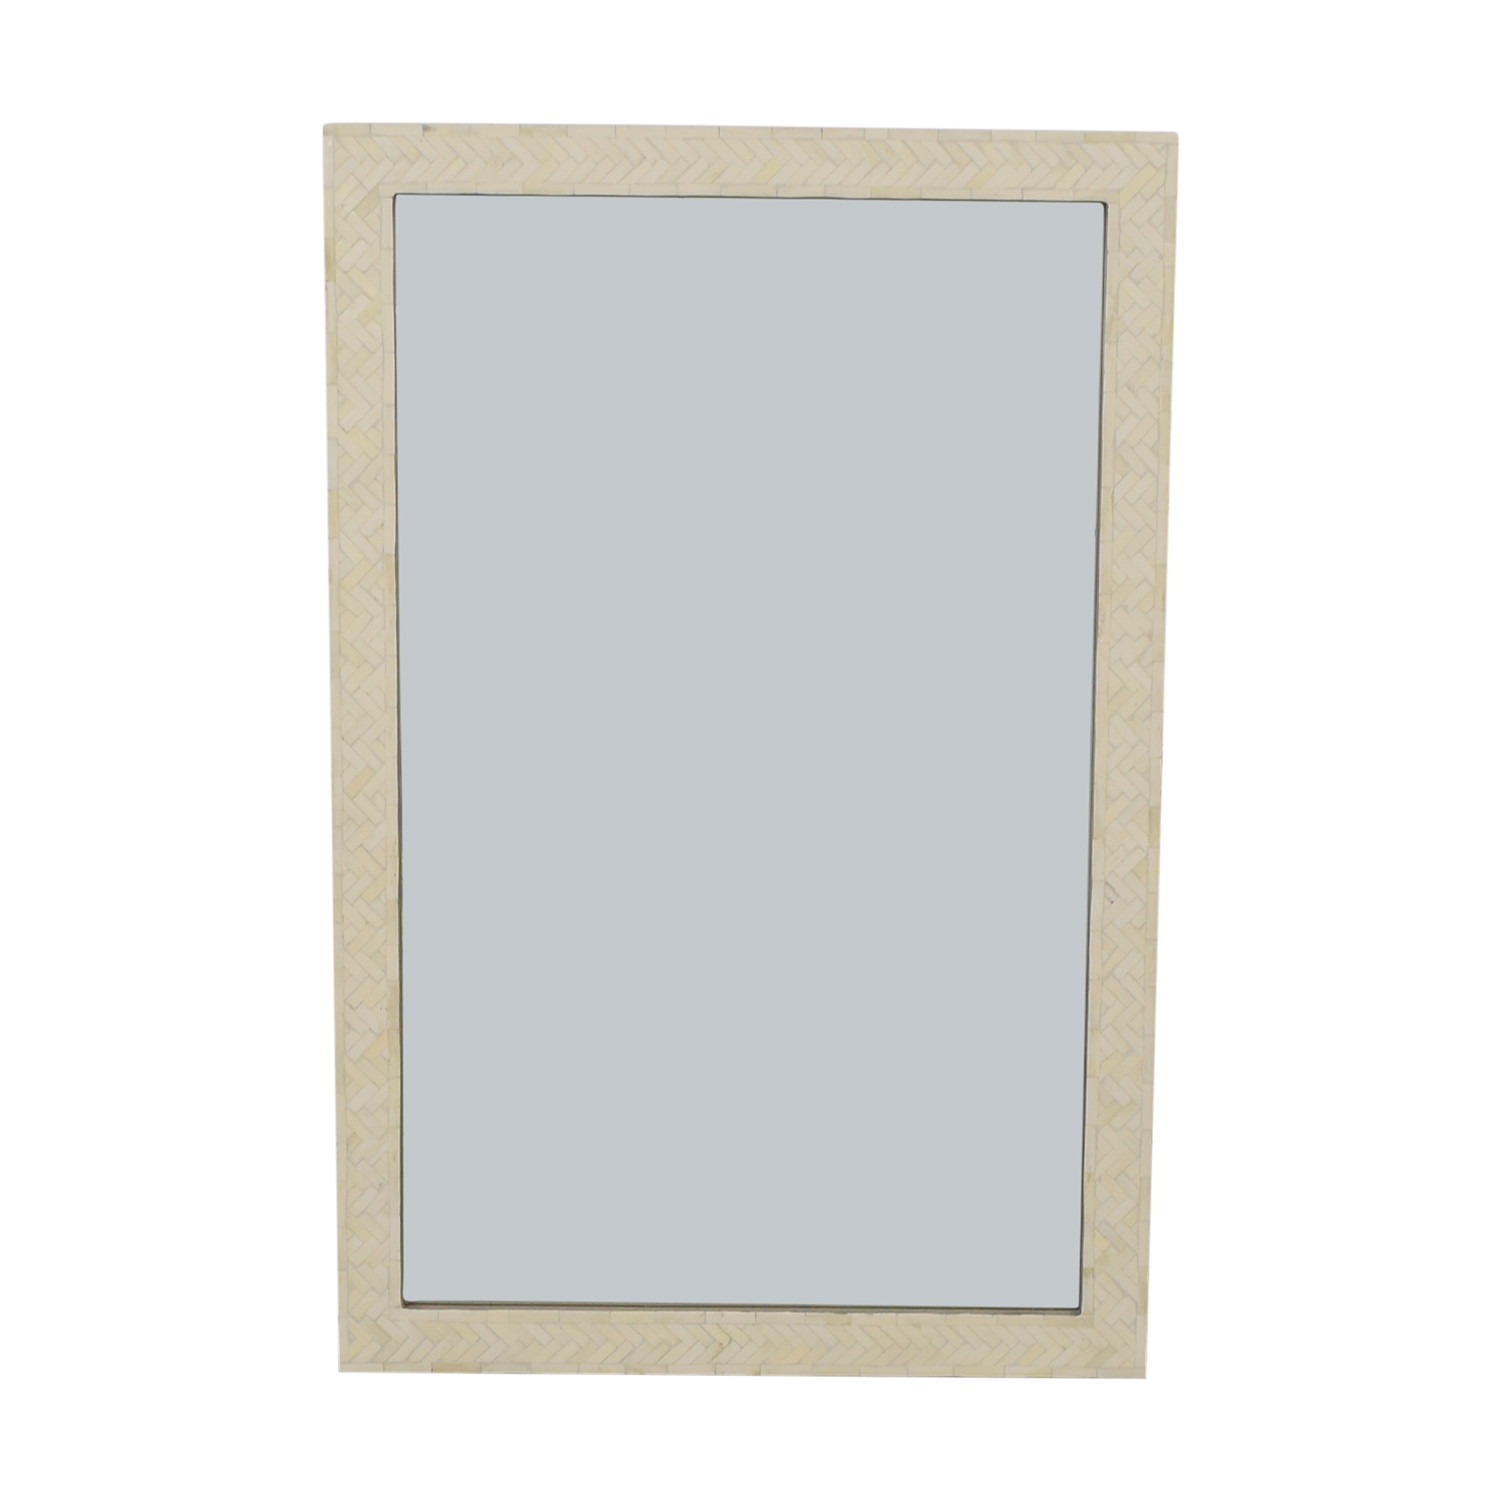 West Elm West Elm Rectangular Mosaic Mirror White